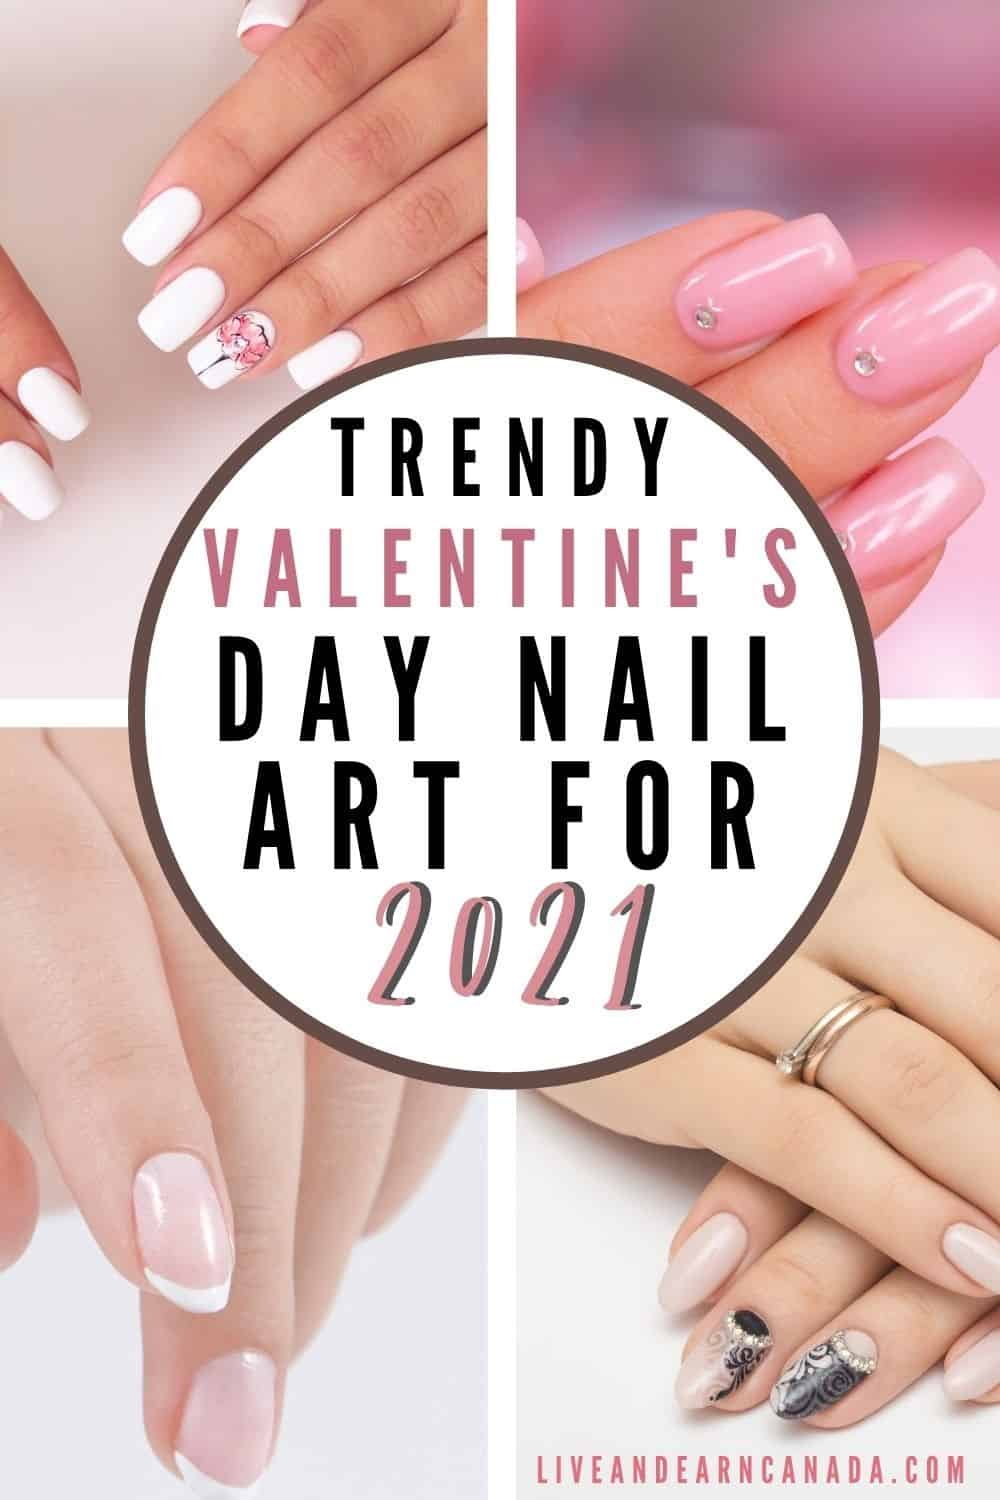 Simple Heart Nail Designs For Valentine's Day! Trendy Valentine's Day Nails For 2021. Valentine's Day is such a fun, extra holiday that can be done in a really classy way. I love decorating my home, baking, finding a gorgeous outfit, and even doing my nails for the holiday.